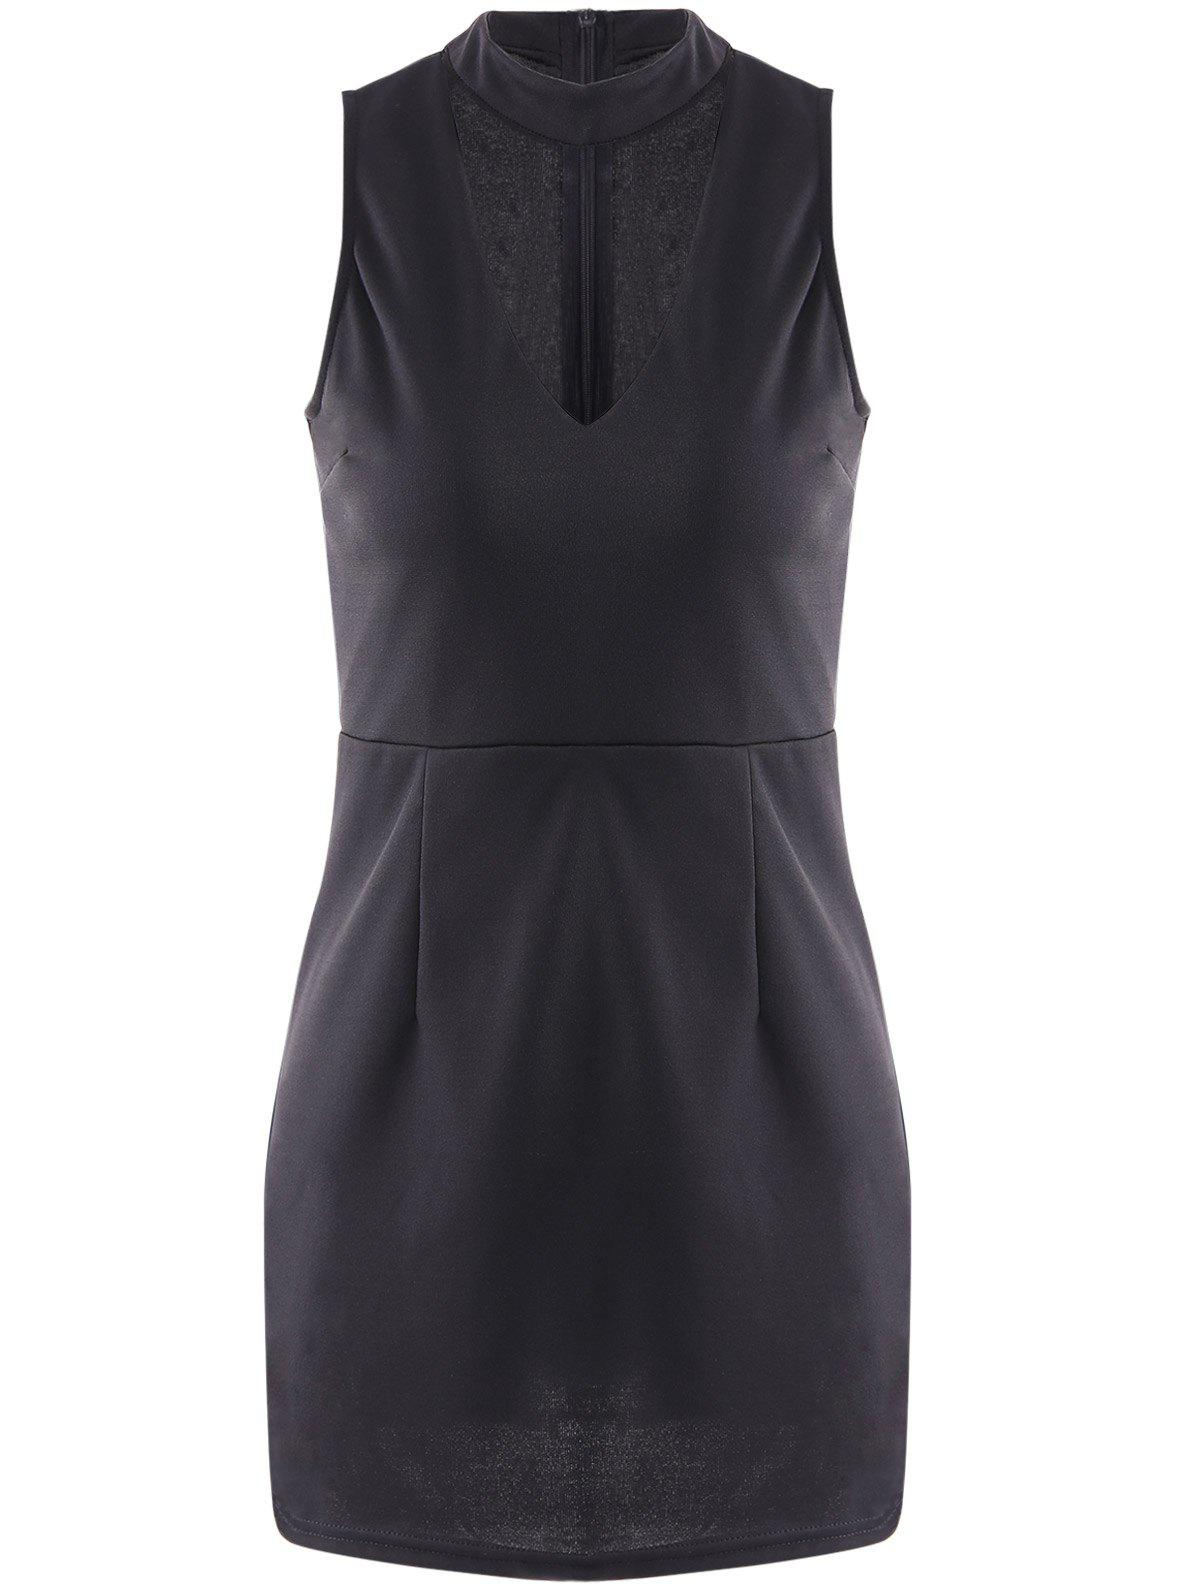 Sexy Stand-Up Collar Sleeveless Solid Color Slimming Women's Dress - BLACK S